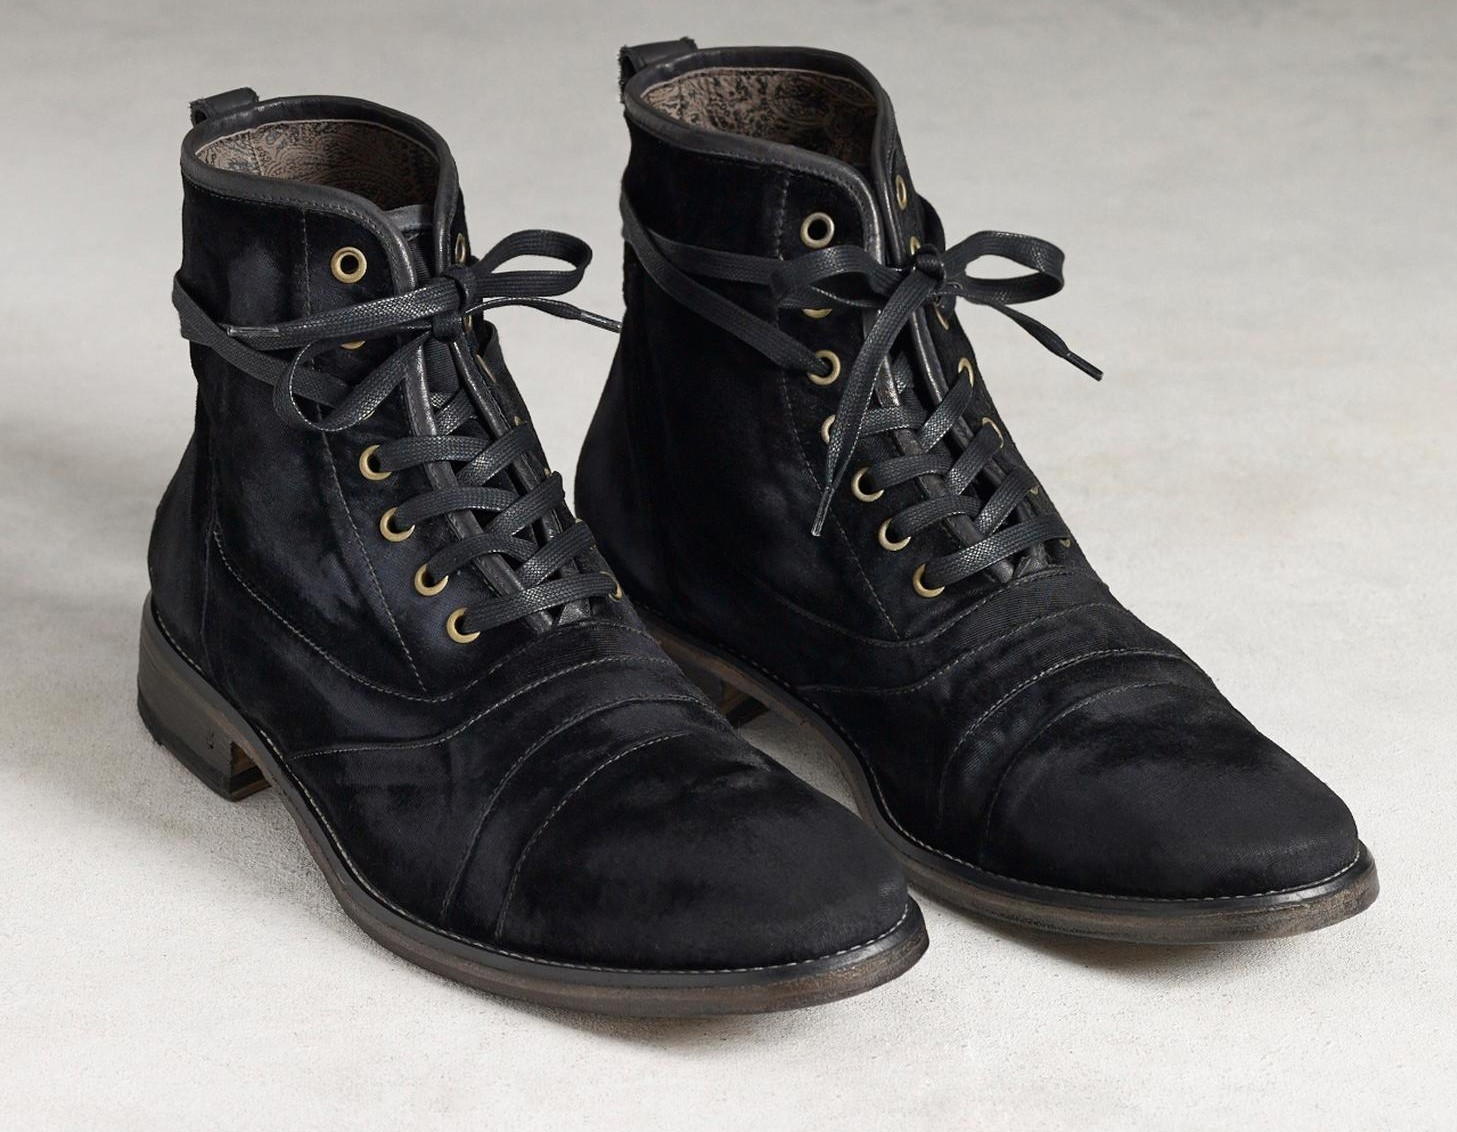 john varvatos adds velvet to the mix with designer boots